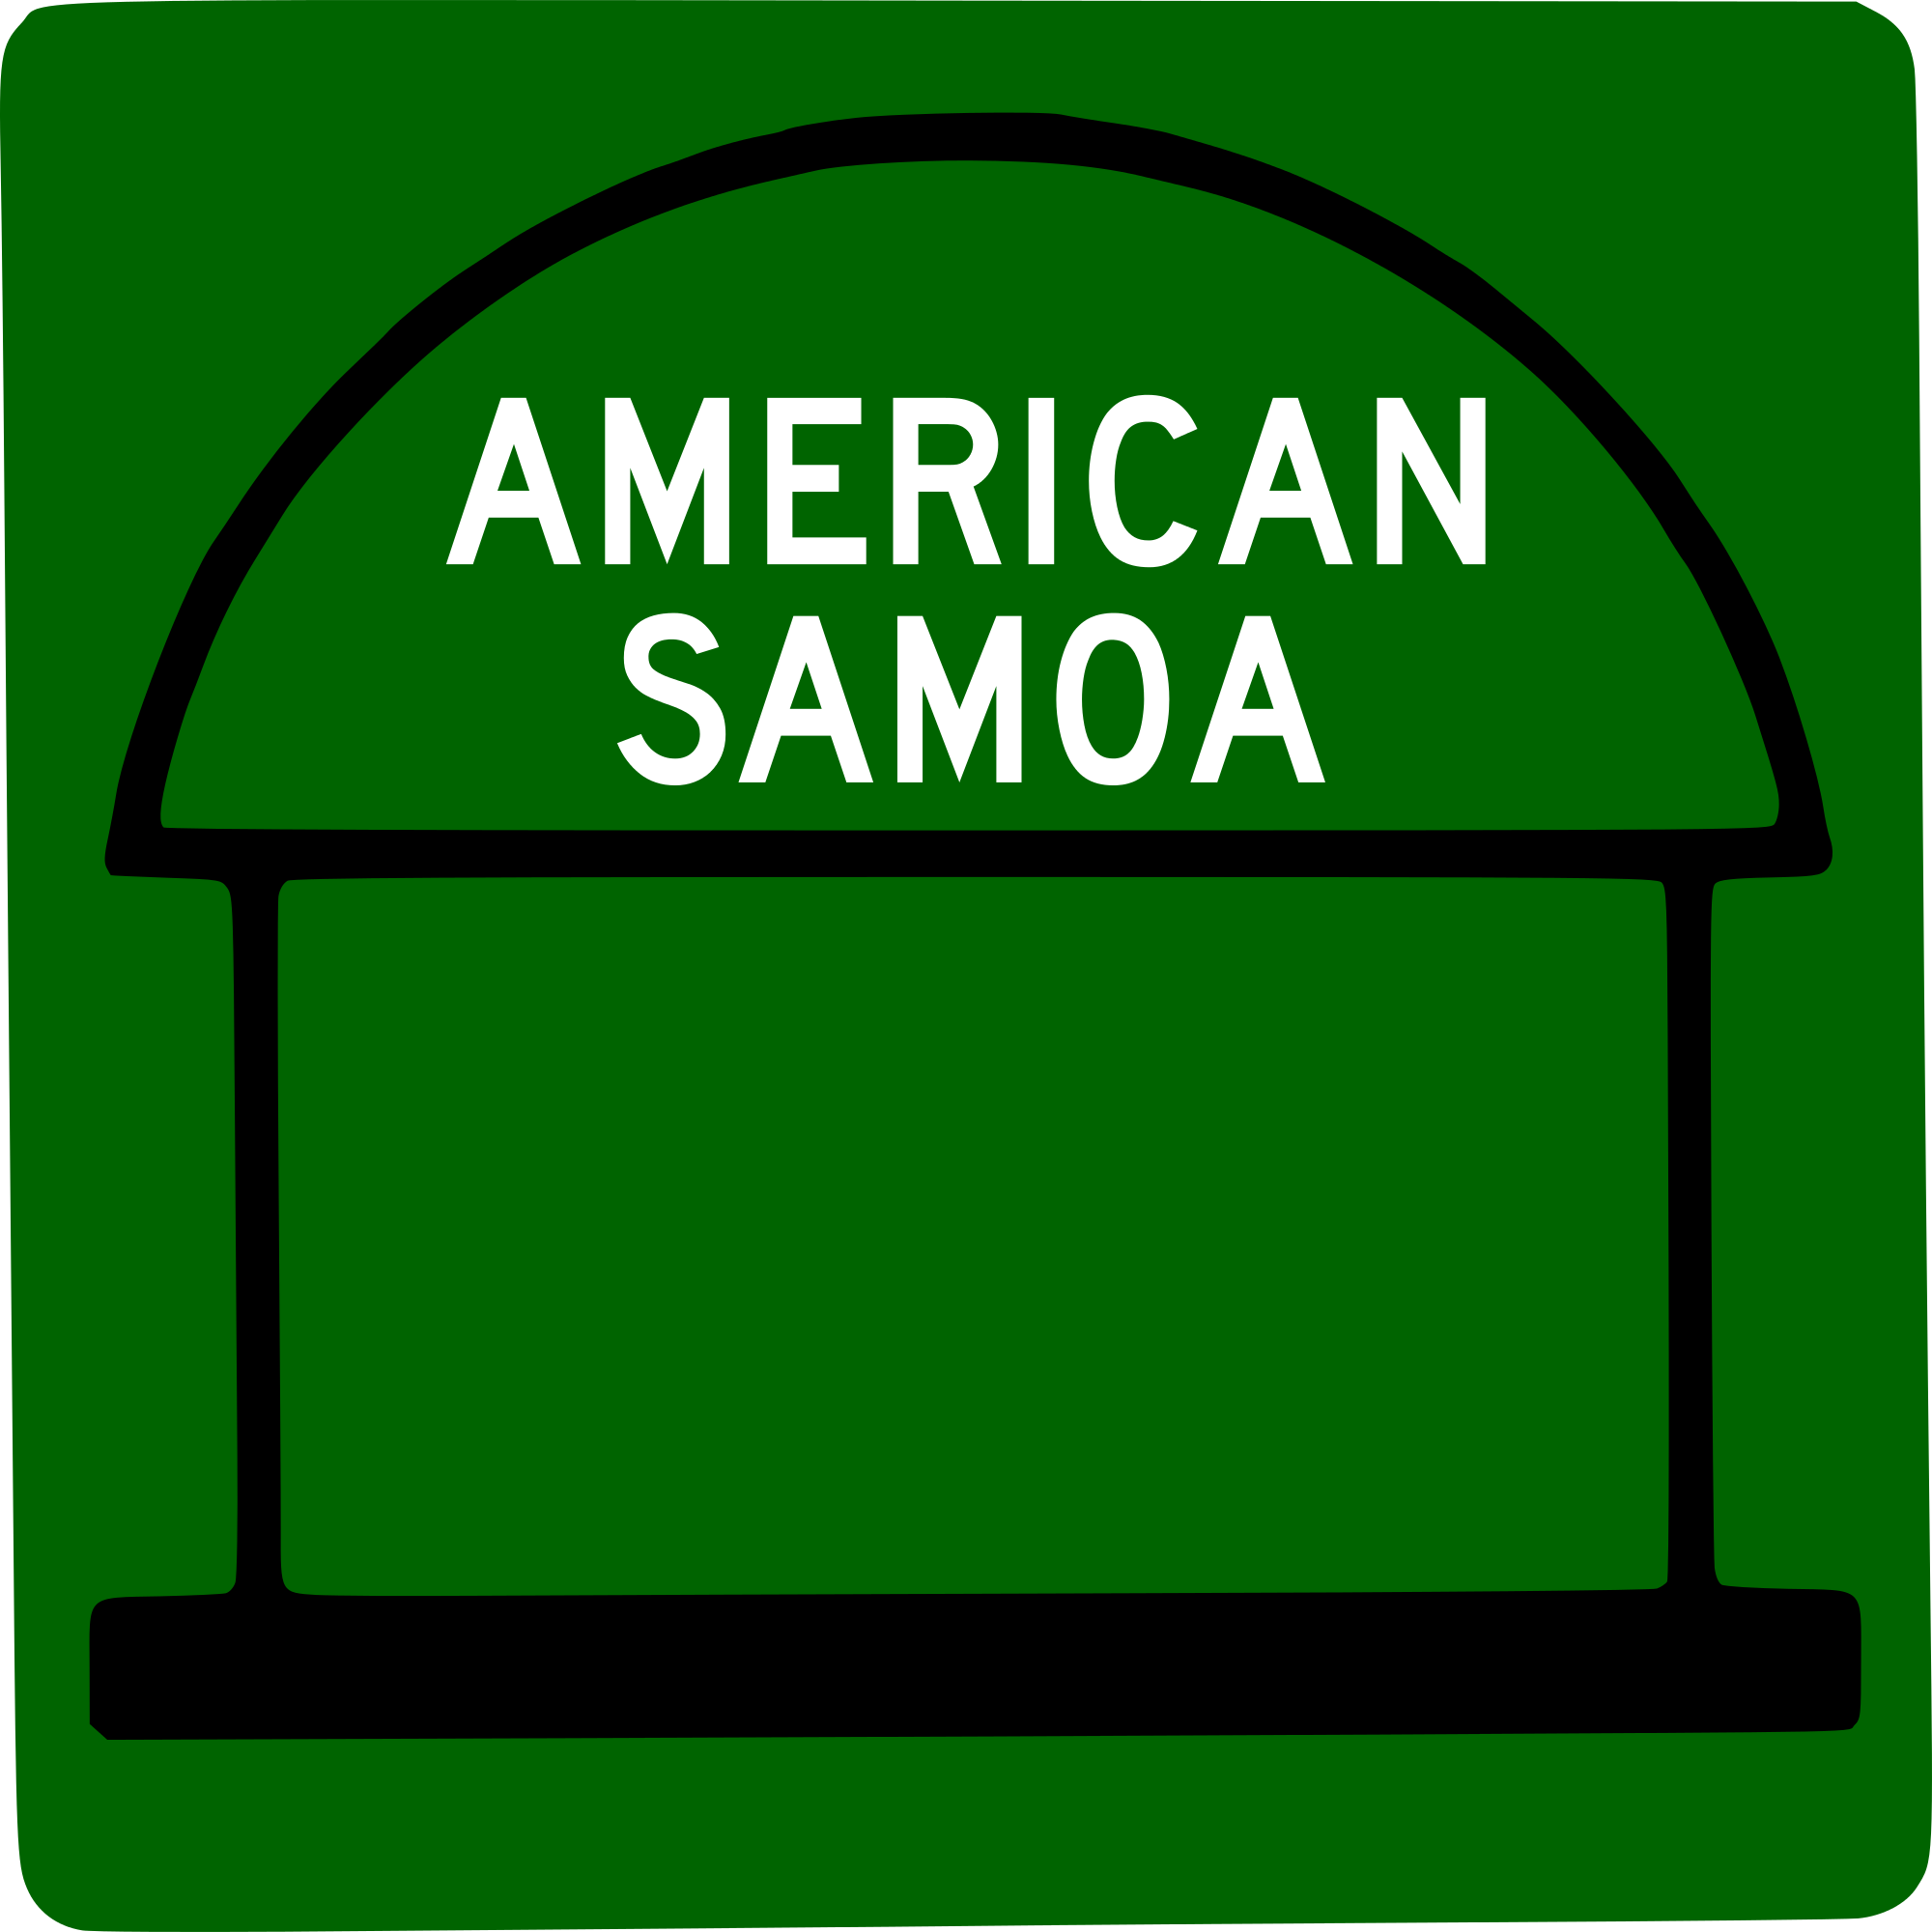 American Samoa svg #8, Download drawings